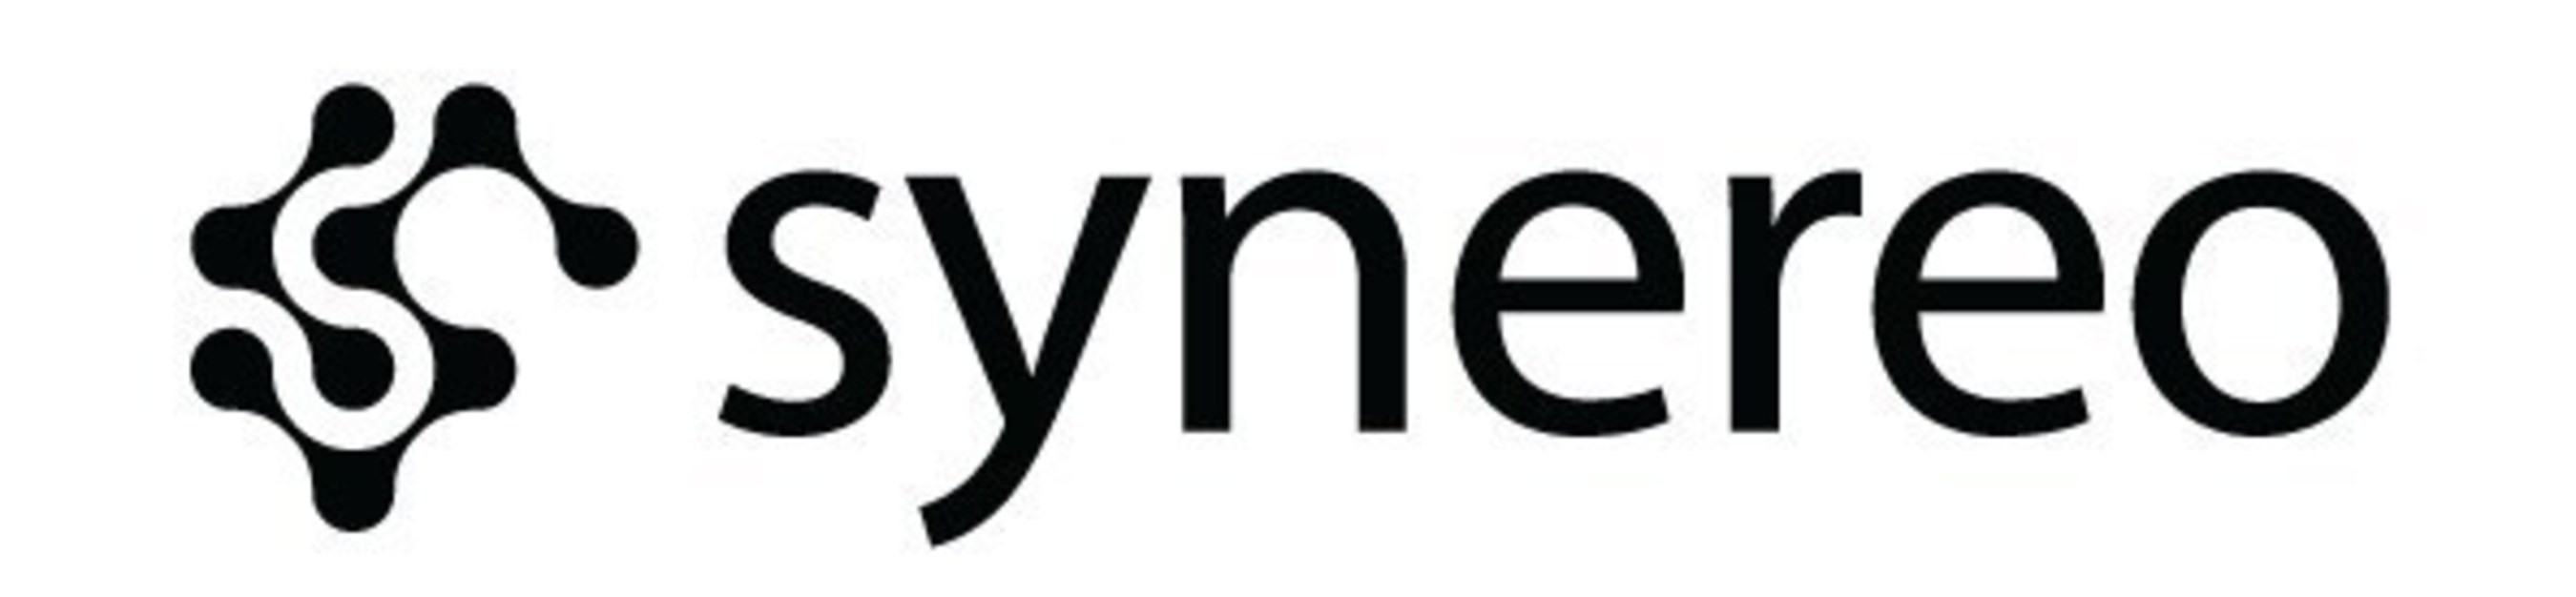 Israeli Startup Synereo Announces RChain   A Blockchain Based Technology  Stack, Enabling Decentralized On Line Computation And Storage ...